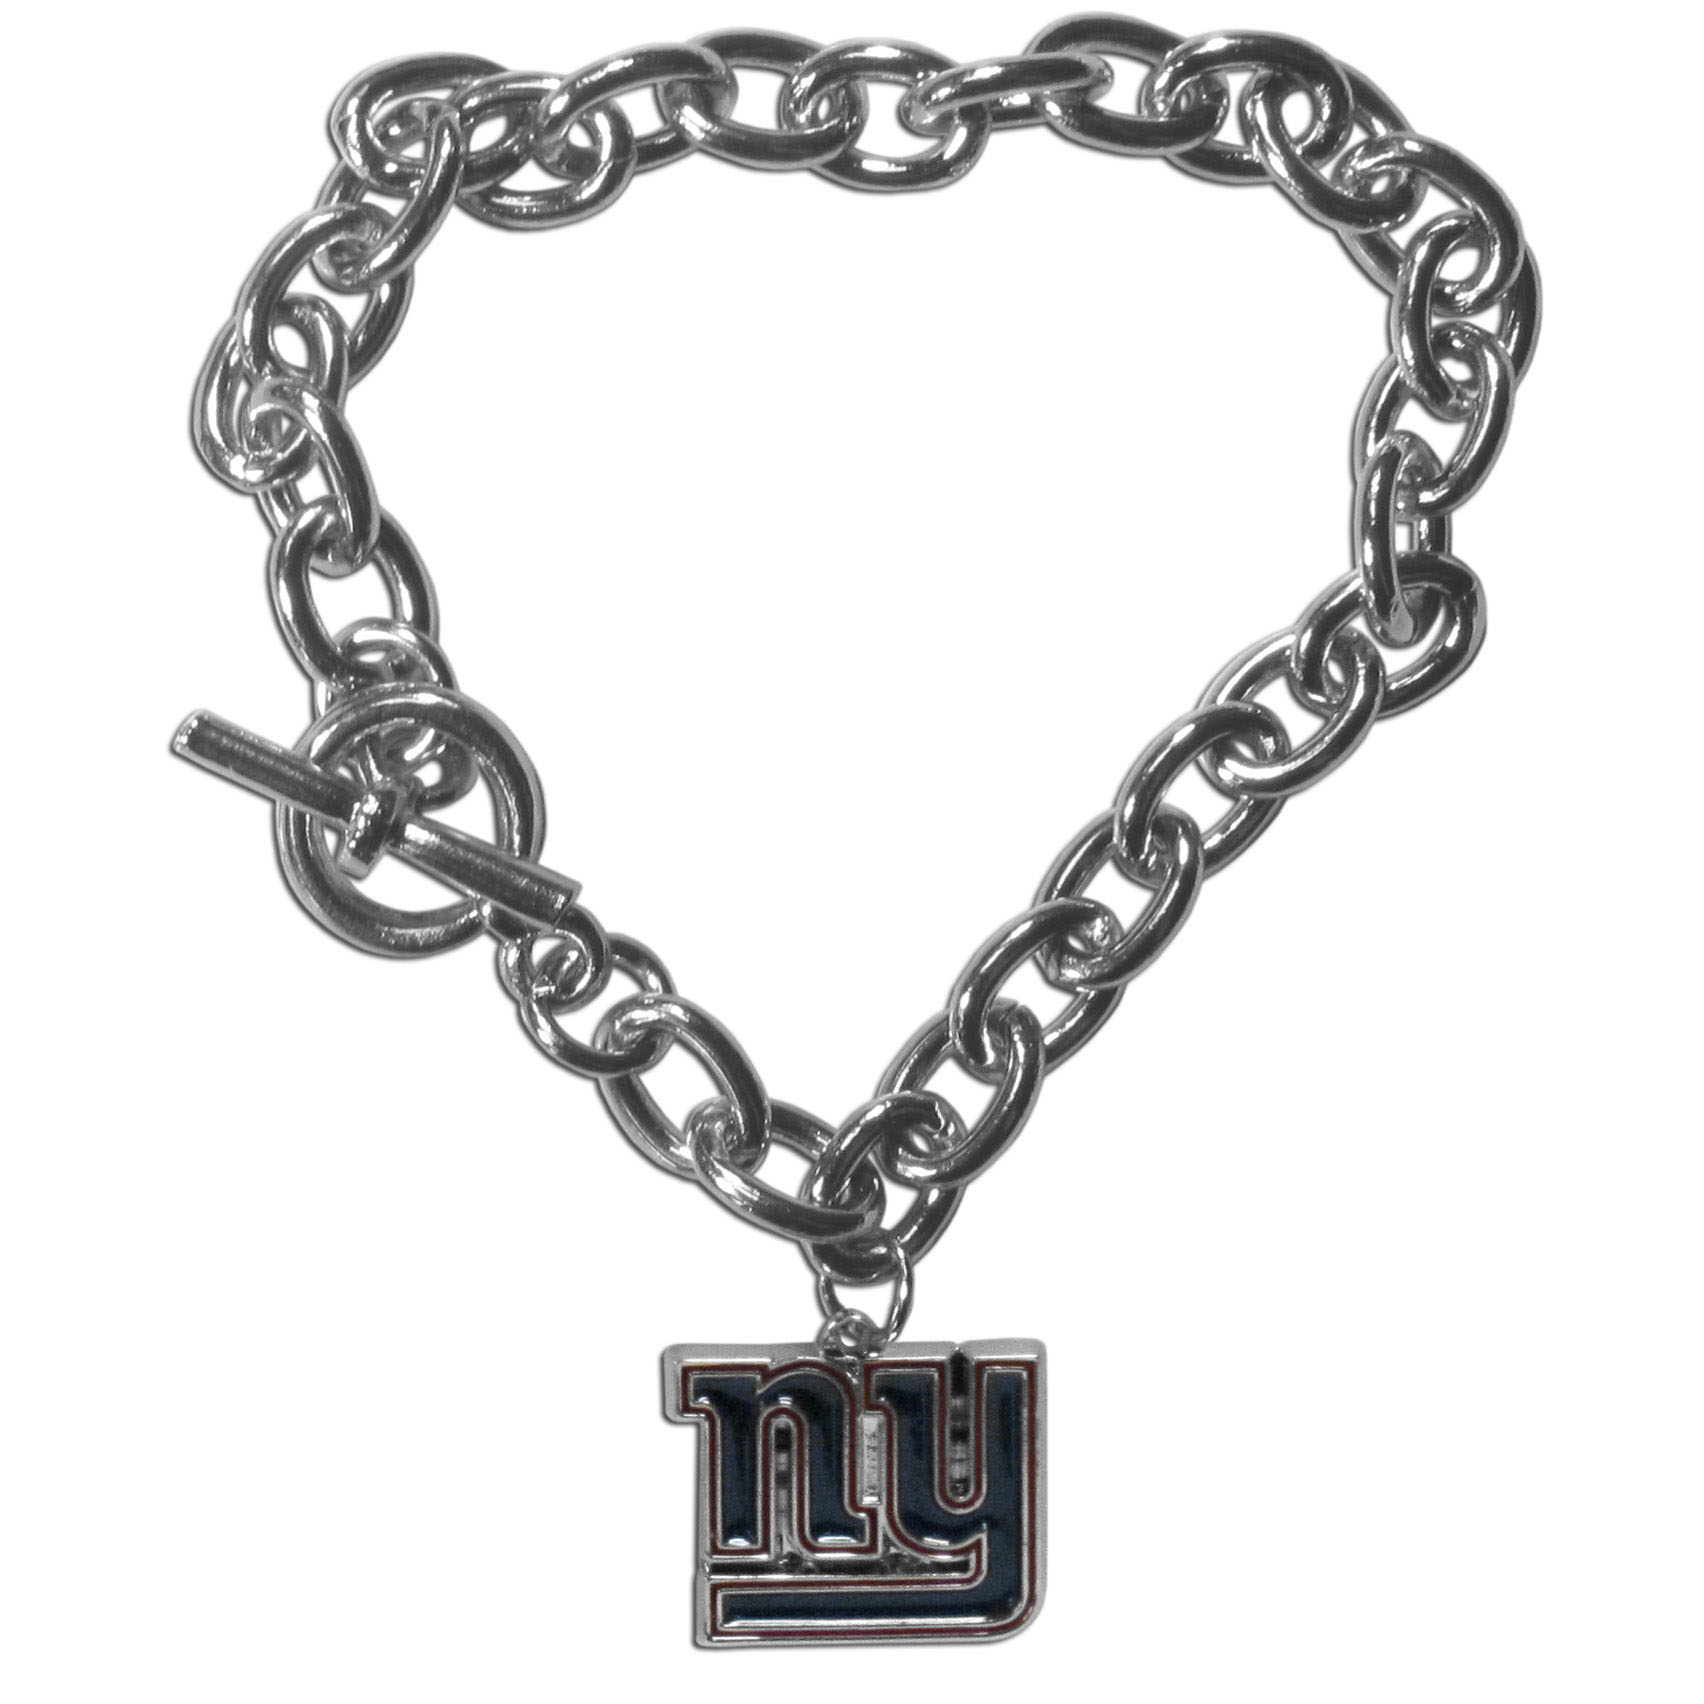 New York Giants Charm Chain Bracelet - Our classic single charm bracelet is a great way to show off your team pride! The 7.5 inch large link chain features a high polish New York Giants charm and features a toggle clasp which makes it super easy to take on and off.